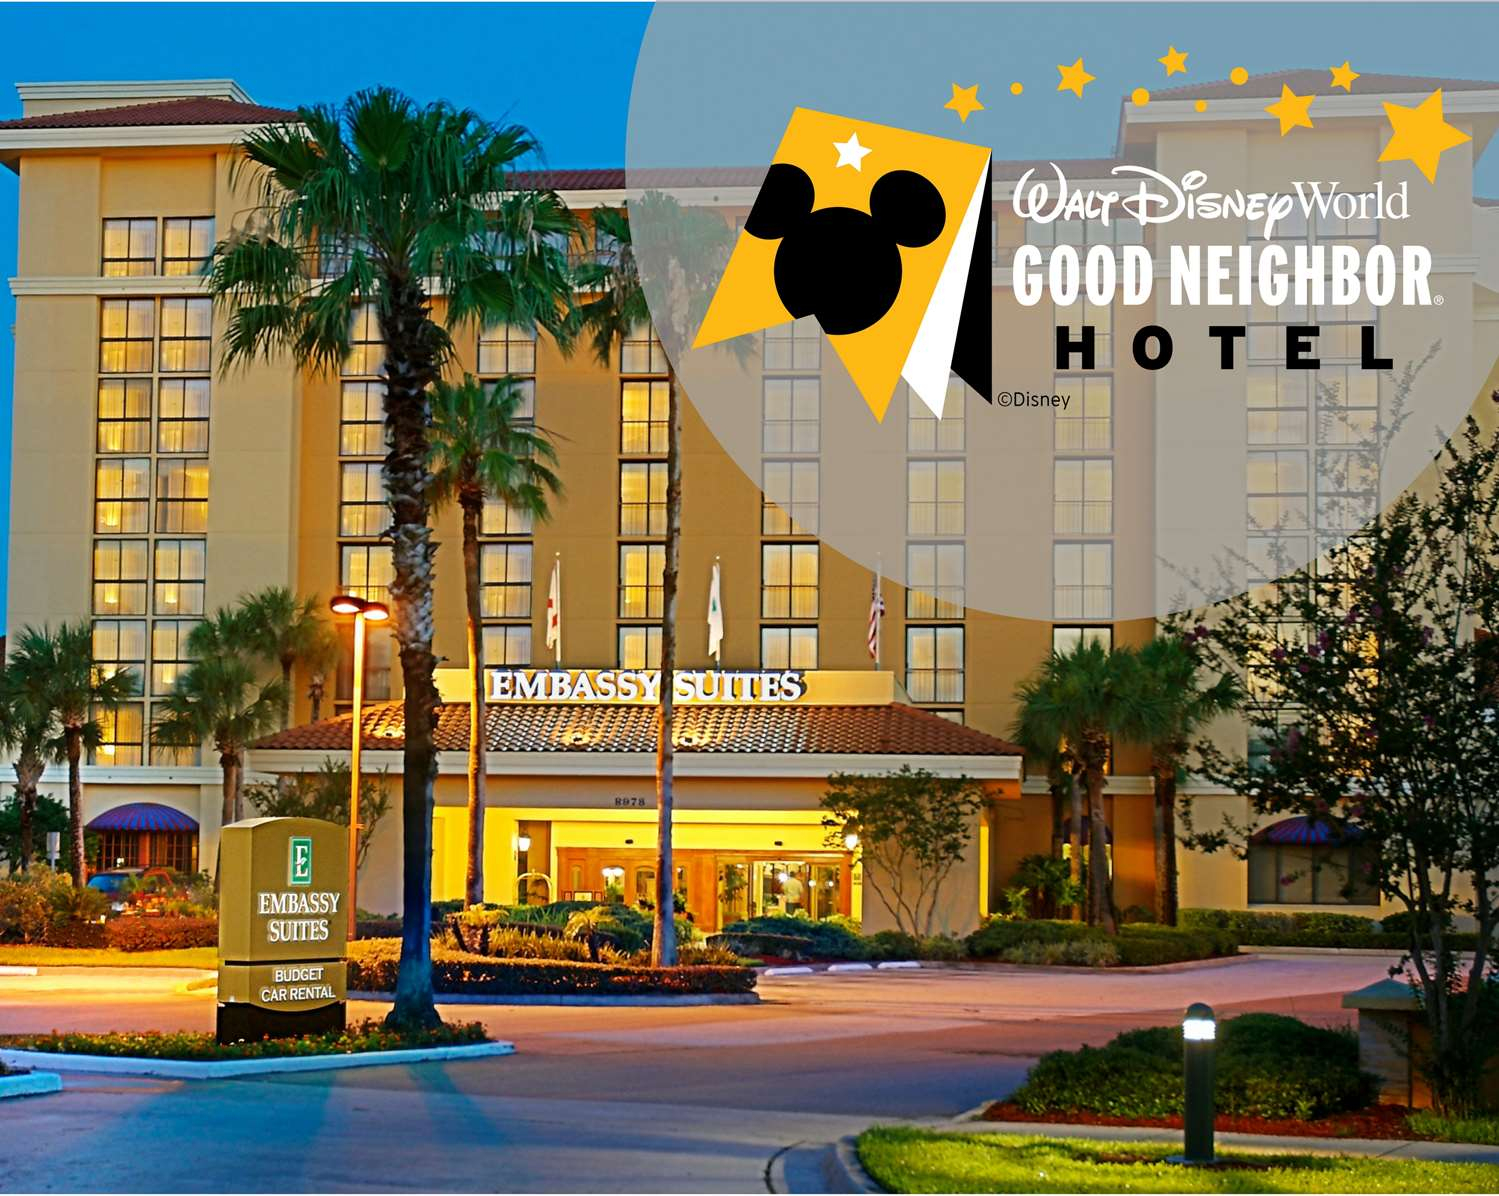 Meetings And Events At Embassy Suiteshilton Orlando - Embassy Suites In Florida Map